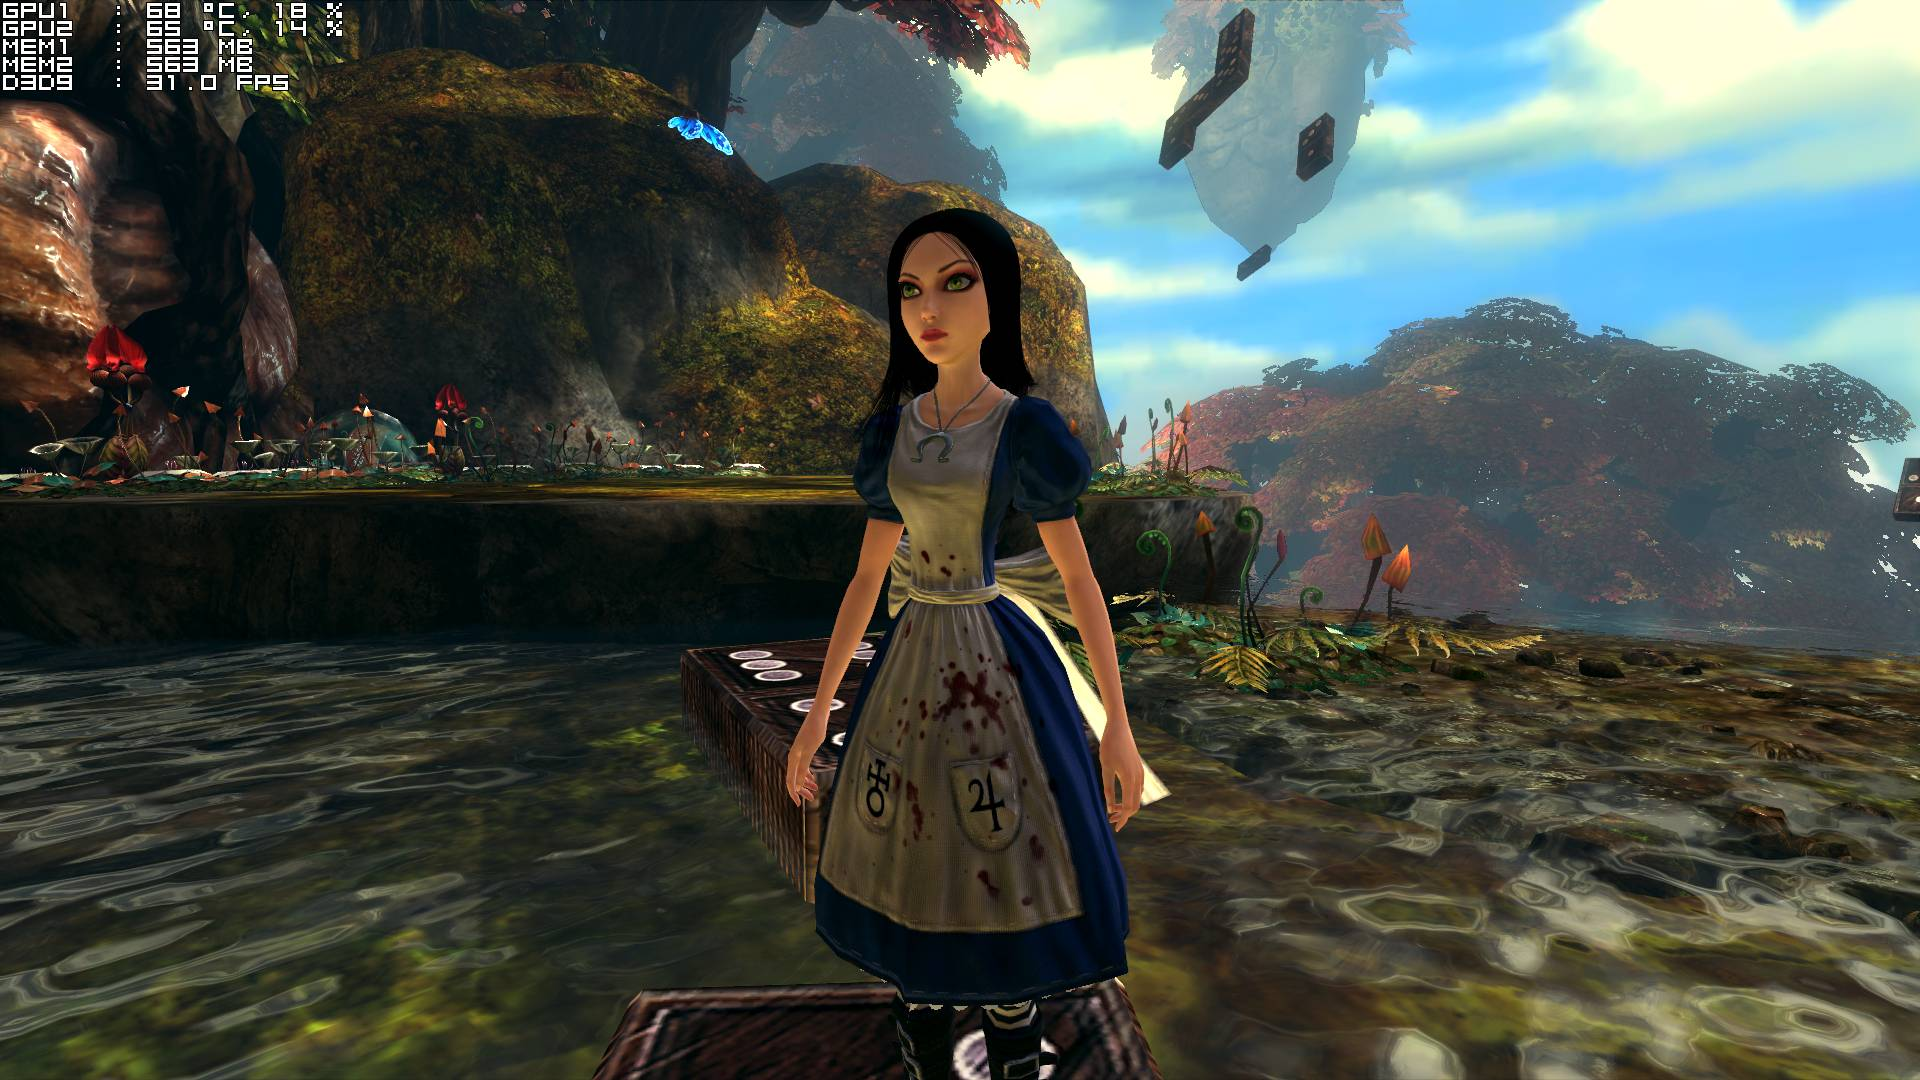 http://gamegpu.ru/images/stories/Test_GPU/Action/Alice_Madness_Returns_/AliceMadnessReturns_2011_06_16_11_32_39_605.jpg